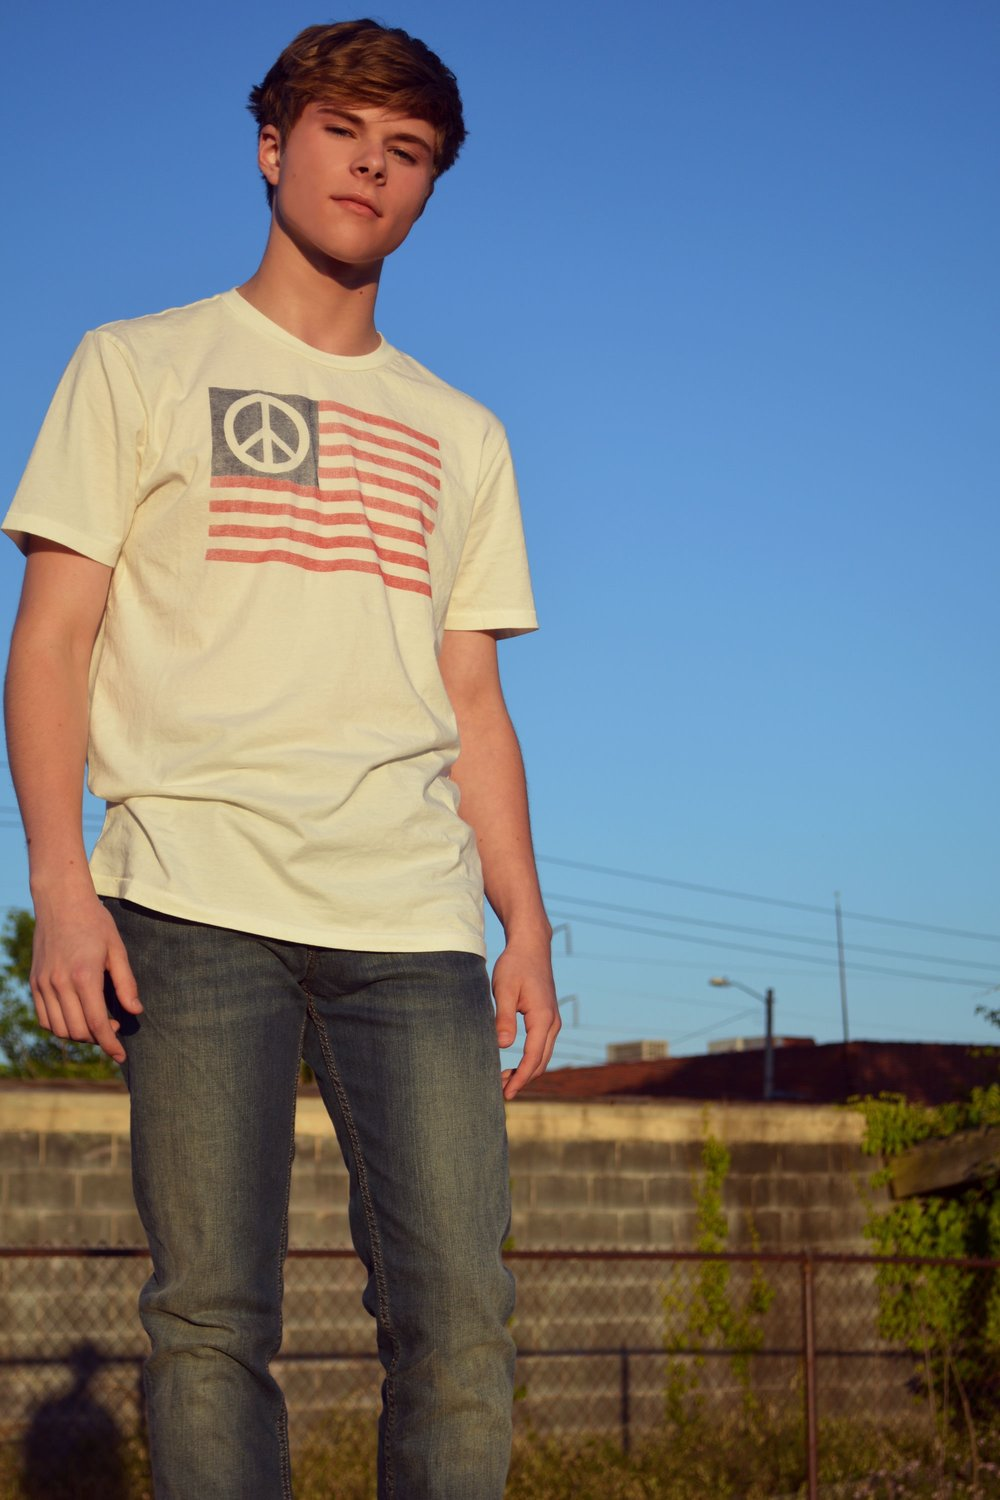 Ryan-Peace-America-Shirt-1-WEB (1).jpg